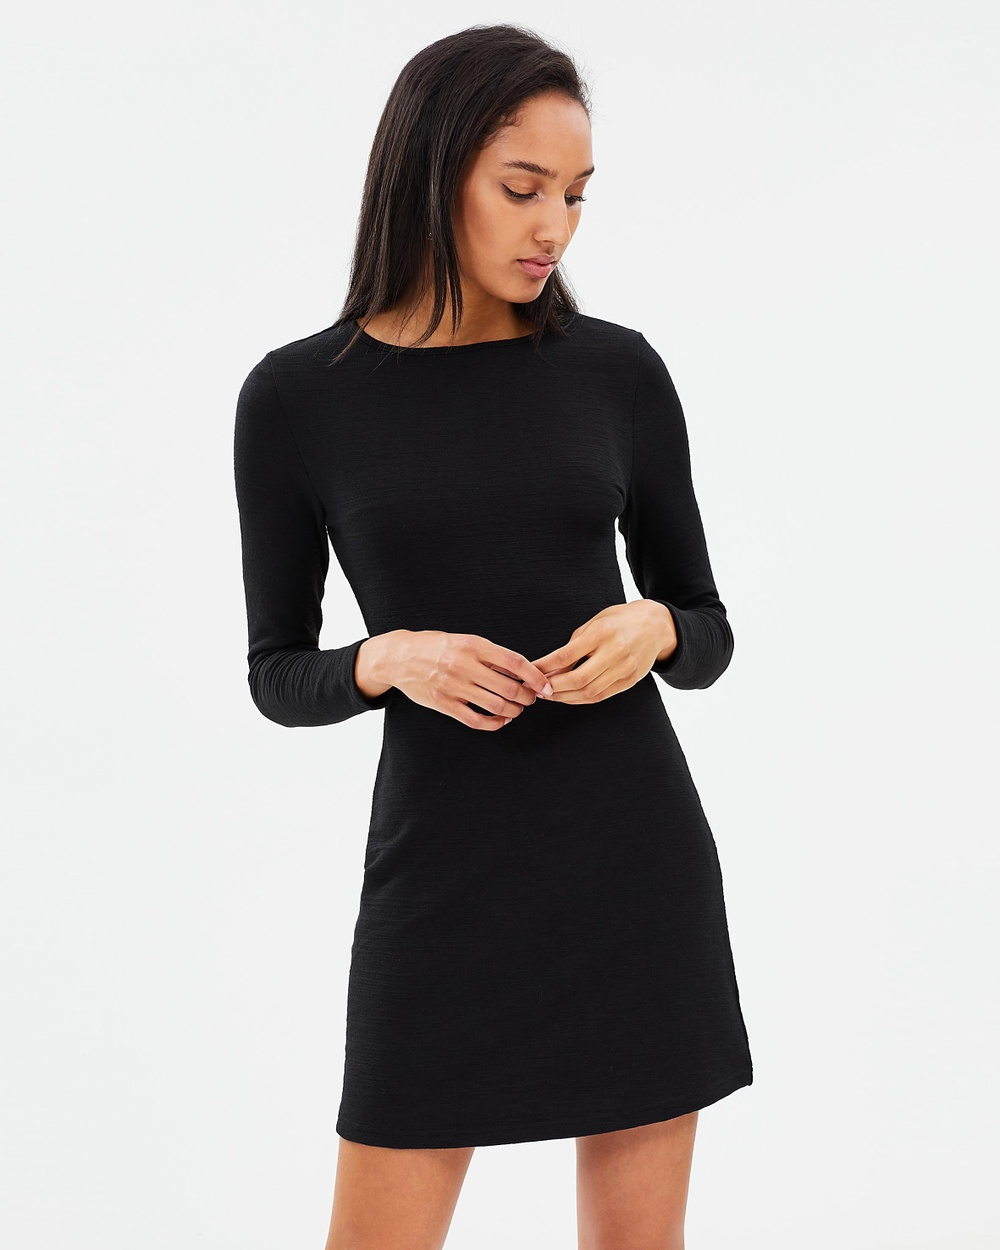 Photo of Atmos & Here Atmos & Here ICONIC EXCLUSIVE Alexa Jersey Shift Dress Dresses Black ICONIC EXCLUSIVE Alexa Jersey Shift Dress - Reach your new season fashion goals with the latest from AtmosandHere. From must-have dresses to classic off-duty tees and denim you'll never want to take off, look to the brand for on-trend pieces in the latest shapes, colours and prints to match any dress code. Our model is wearing a size AU 8. She is 180cm (5'11